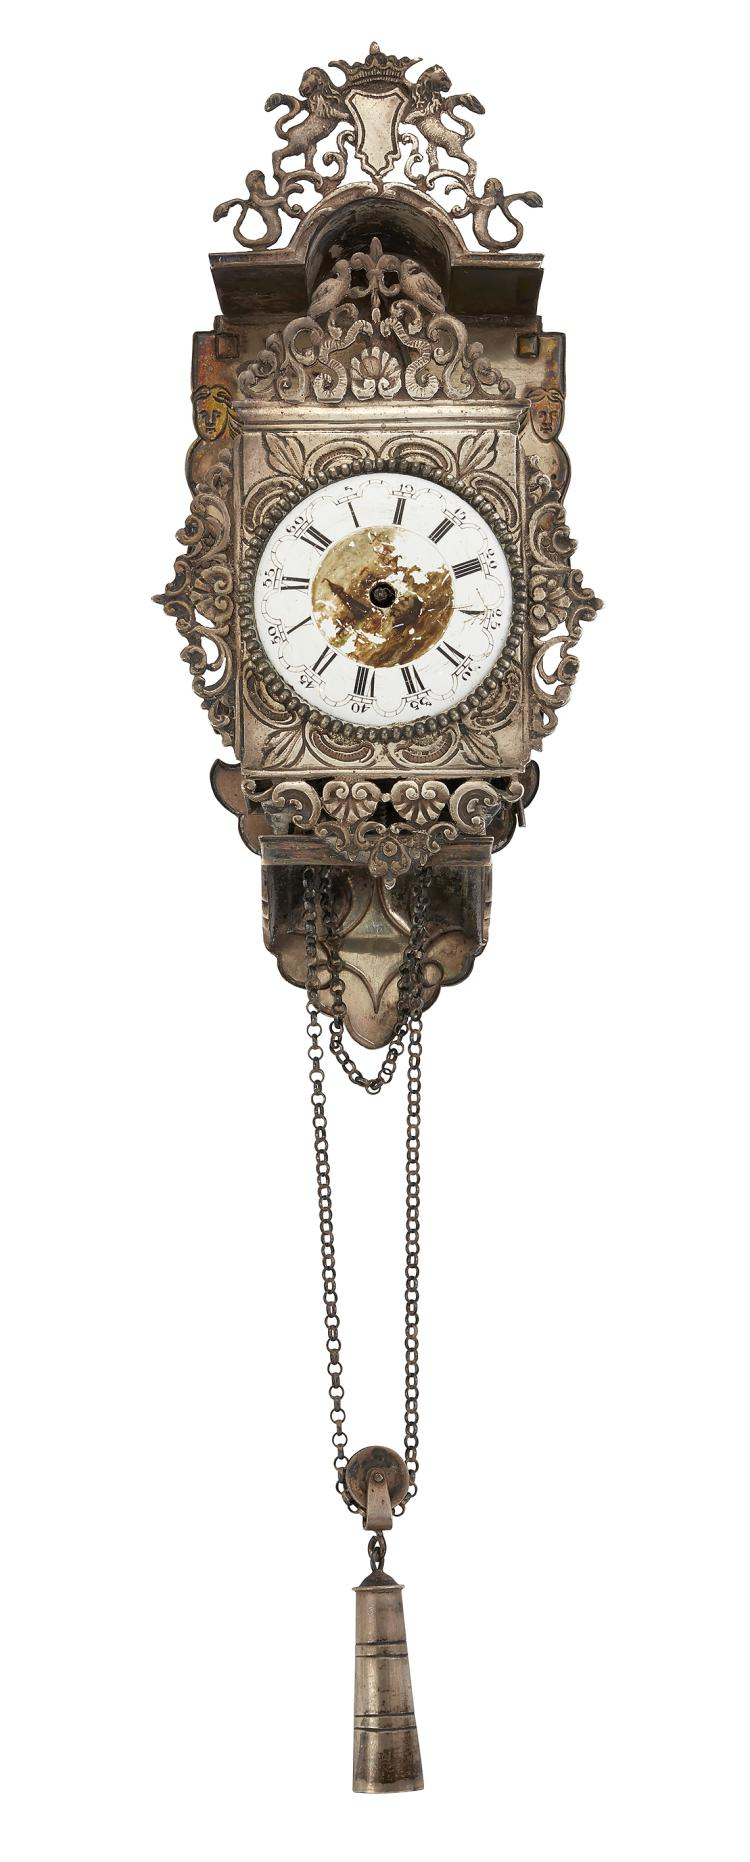 An unusual silver miniature wall clock, the 18th century Dutch verge timepiece with white enamel dial, Roman numerals and central enamelled scene, within cabled border, the verge escapement with fusee pierced balance cock and three arm wheel, signed Jn. Danby, London, in later ornate silver clock mount with foliate pierced ribbon decoration and faux pendulum and chain, 12.5cm